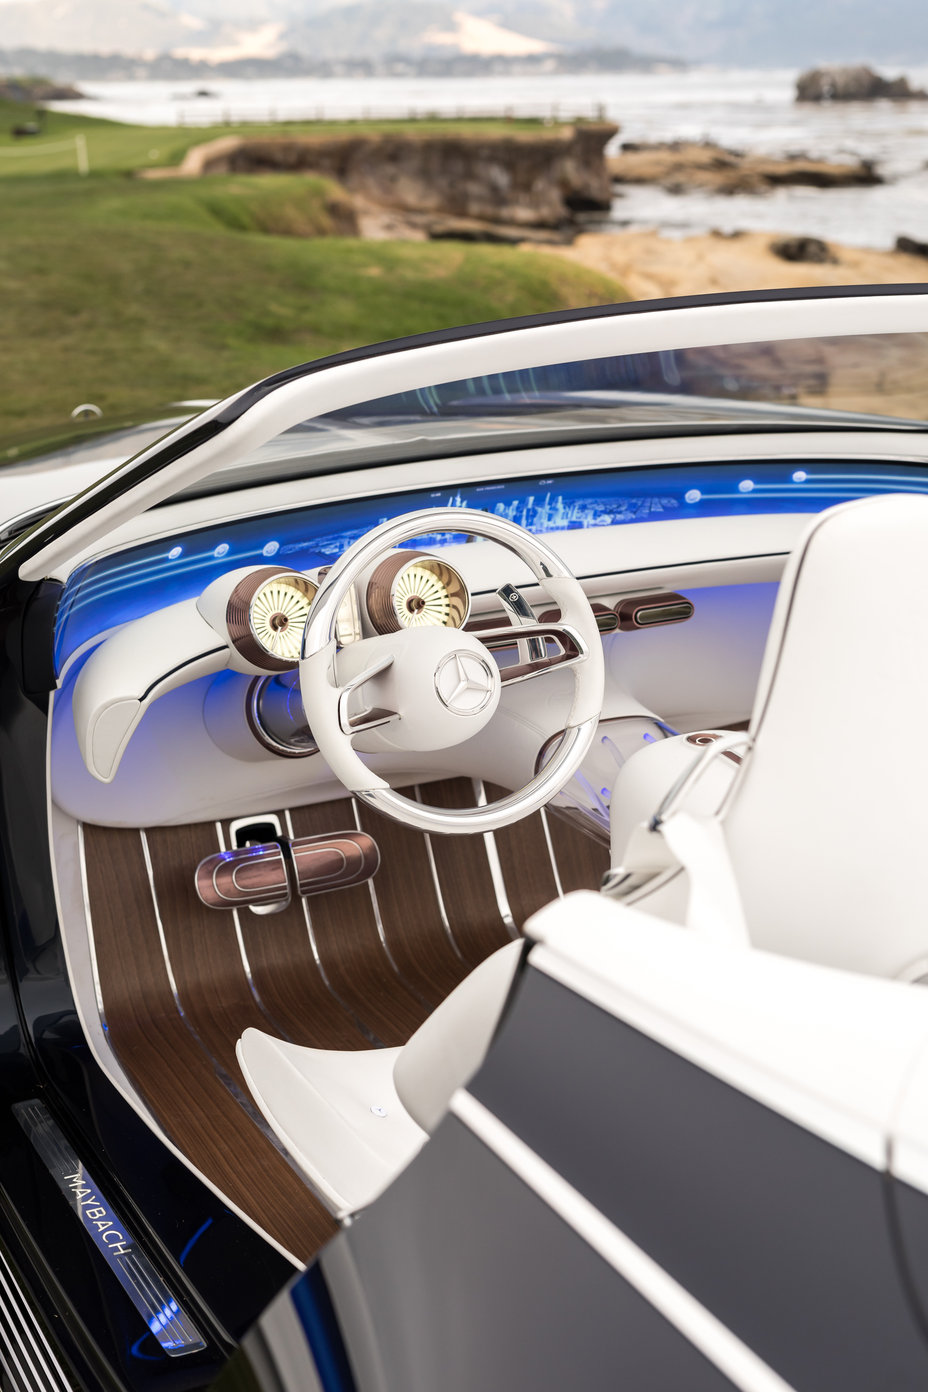 Study of an ultra-stylish luxury-class cabriolet